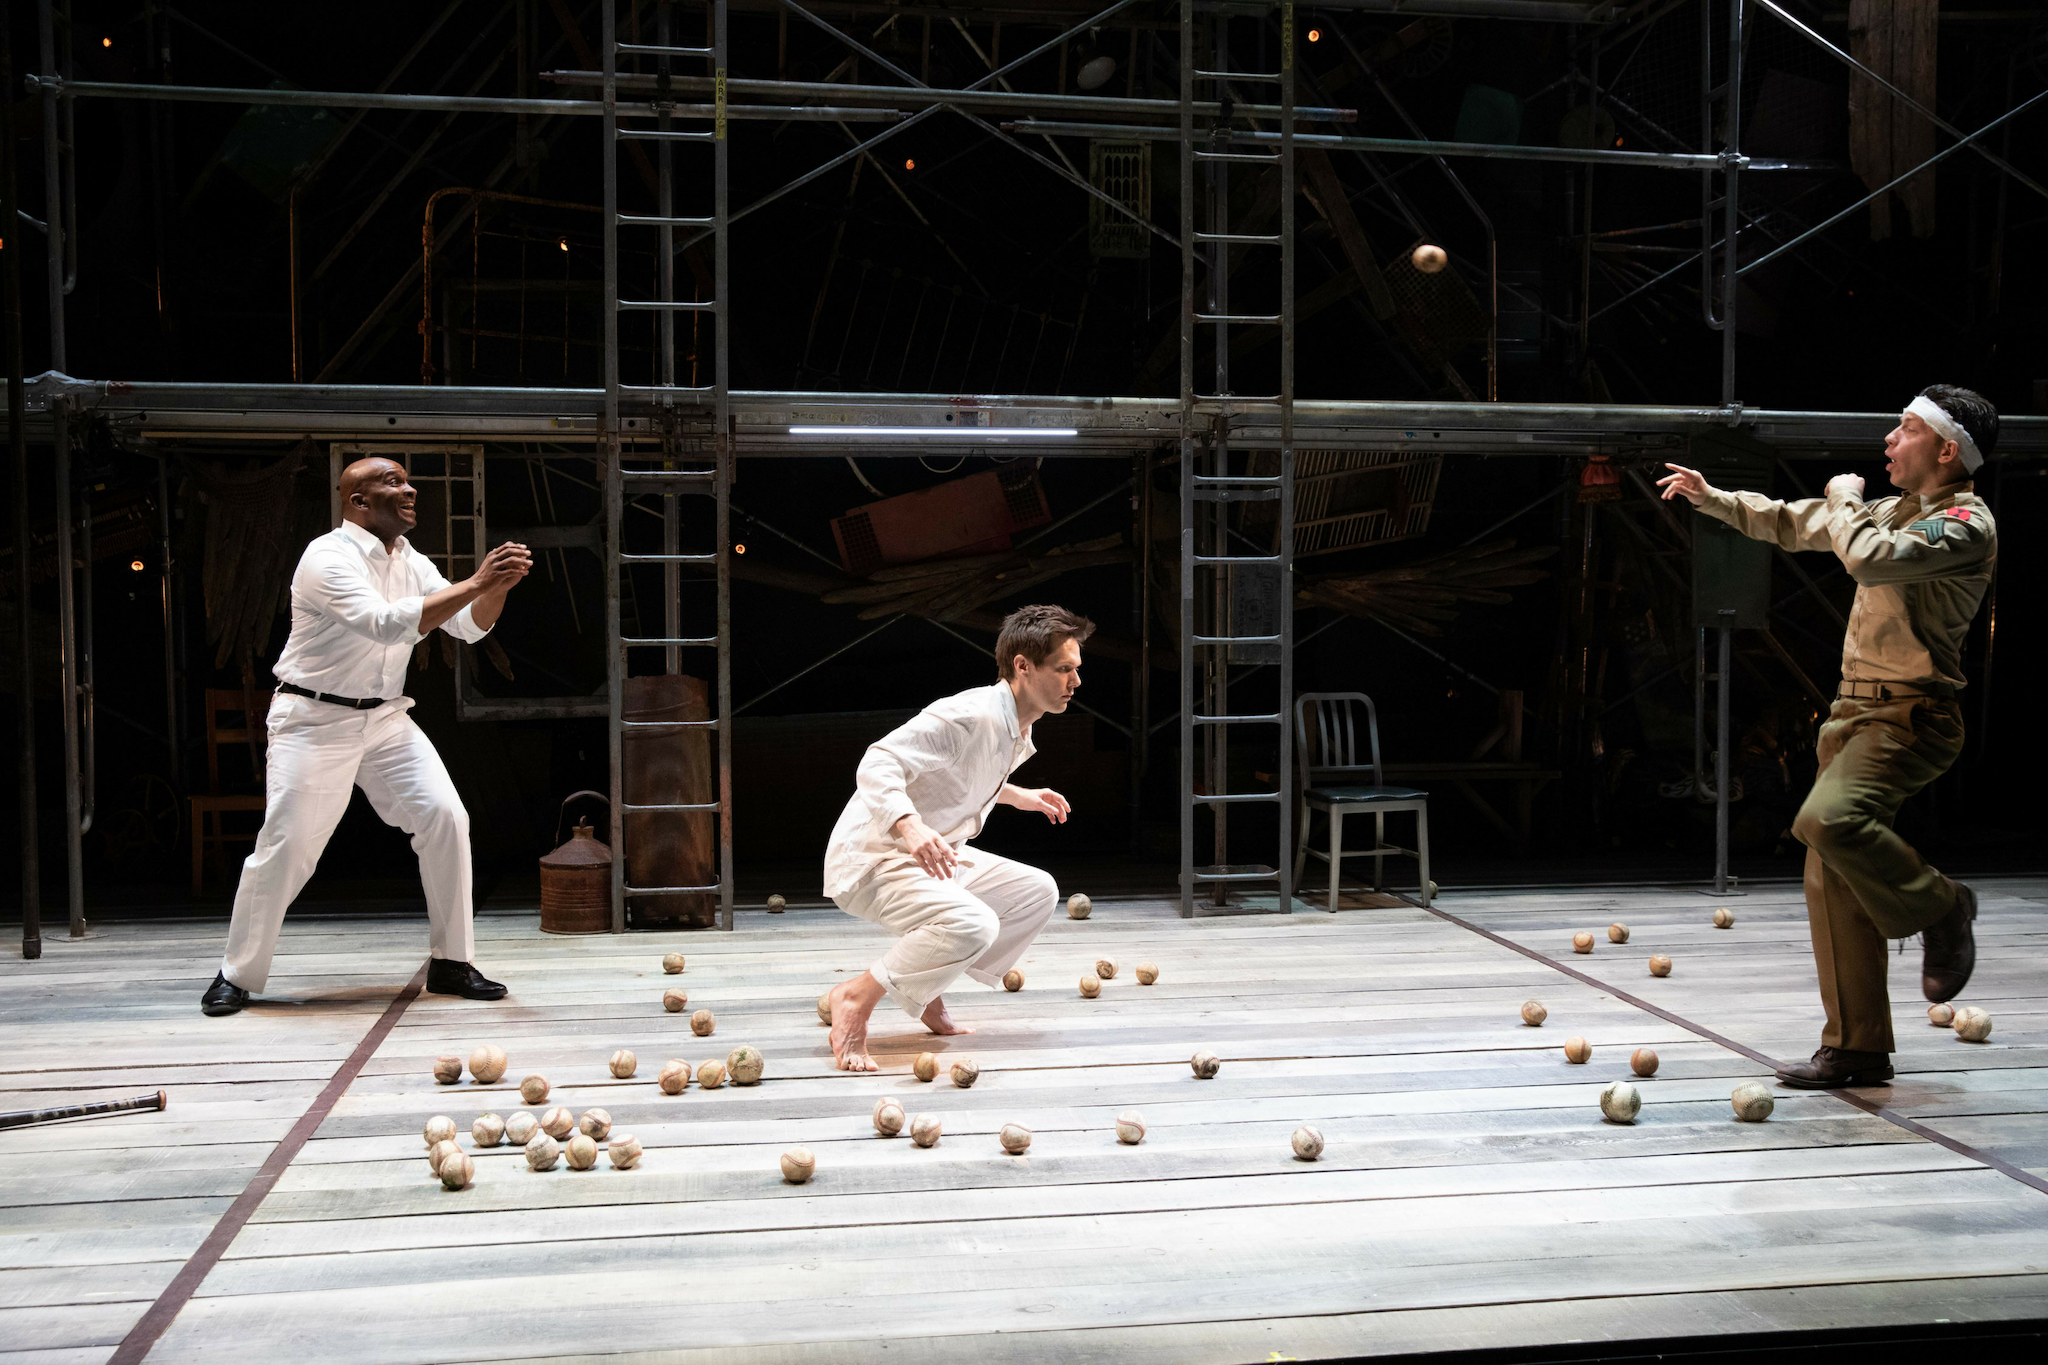 Damon Singletary (Renaldi), Will Taylor (Birdy), and Keith white (Al) in Birdy, 2019-Photo by Evgenia Eliseeva